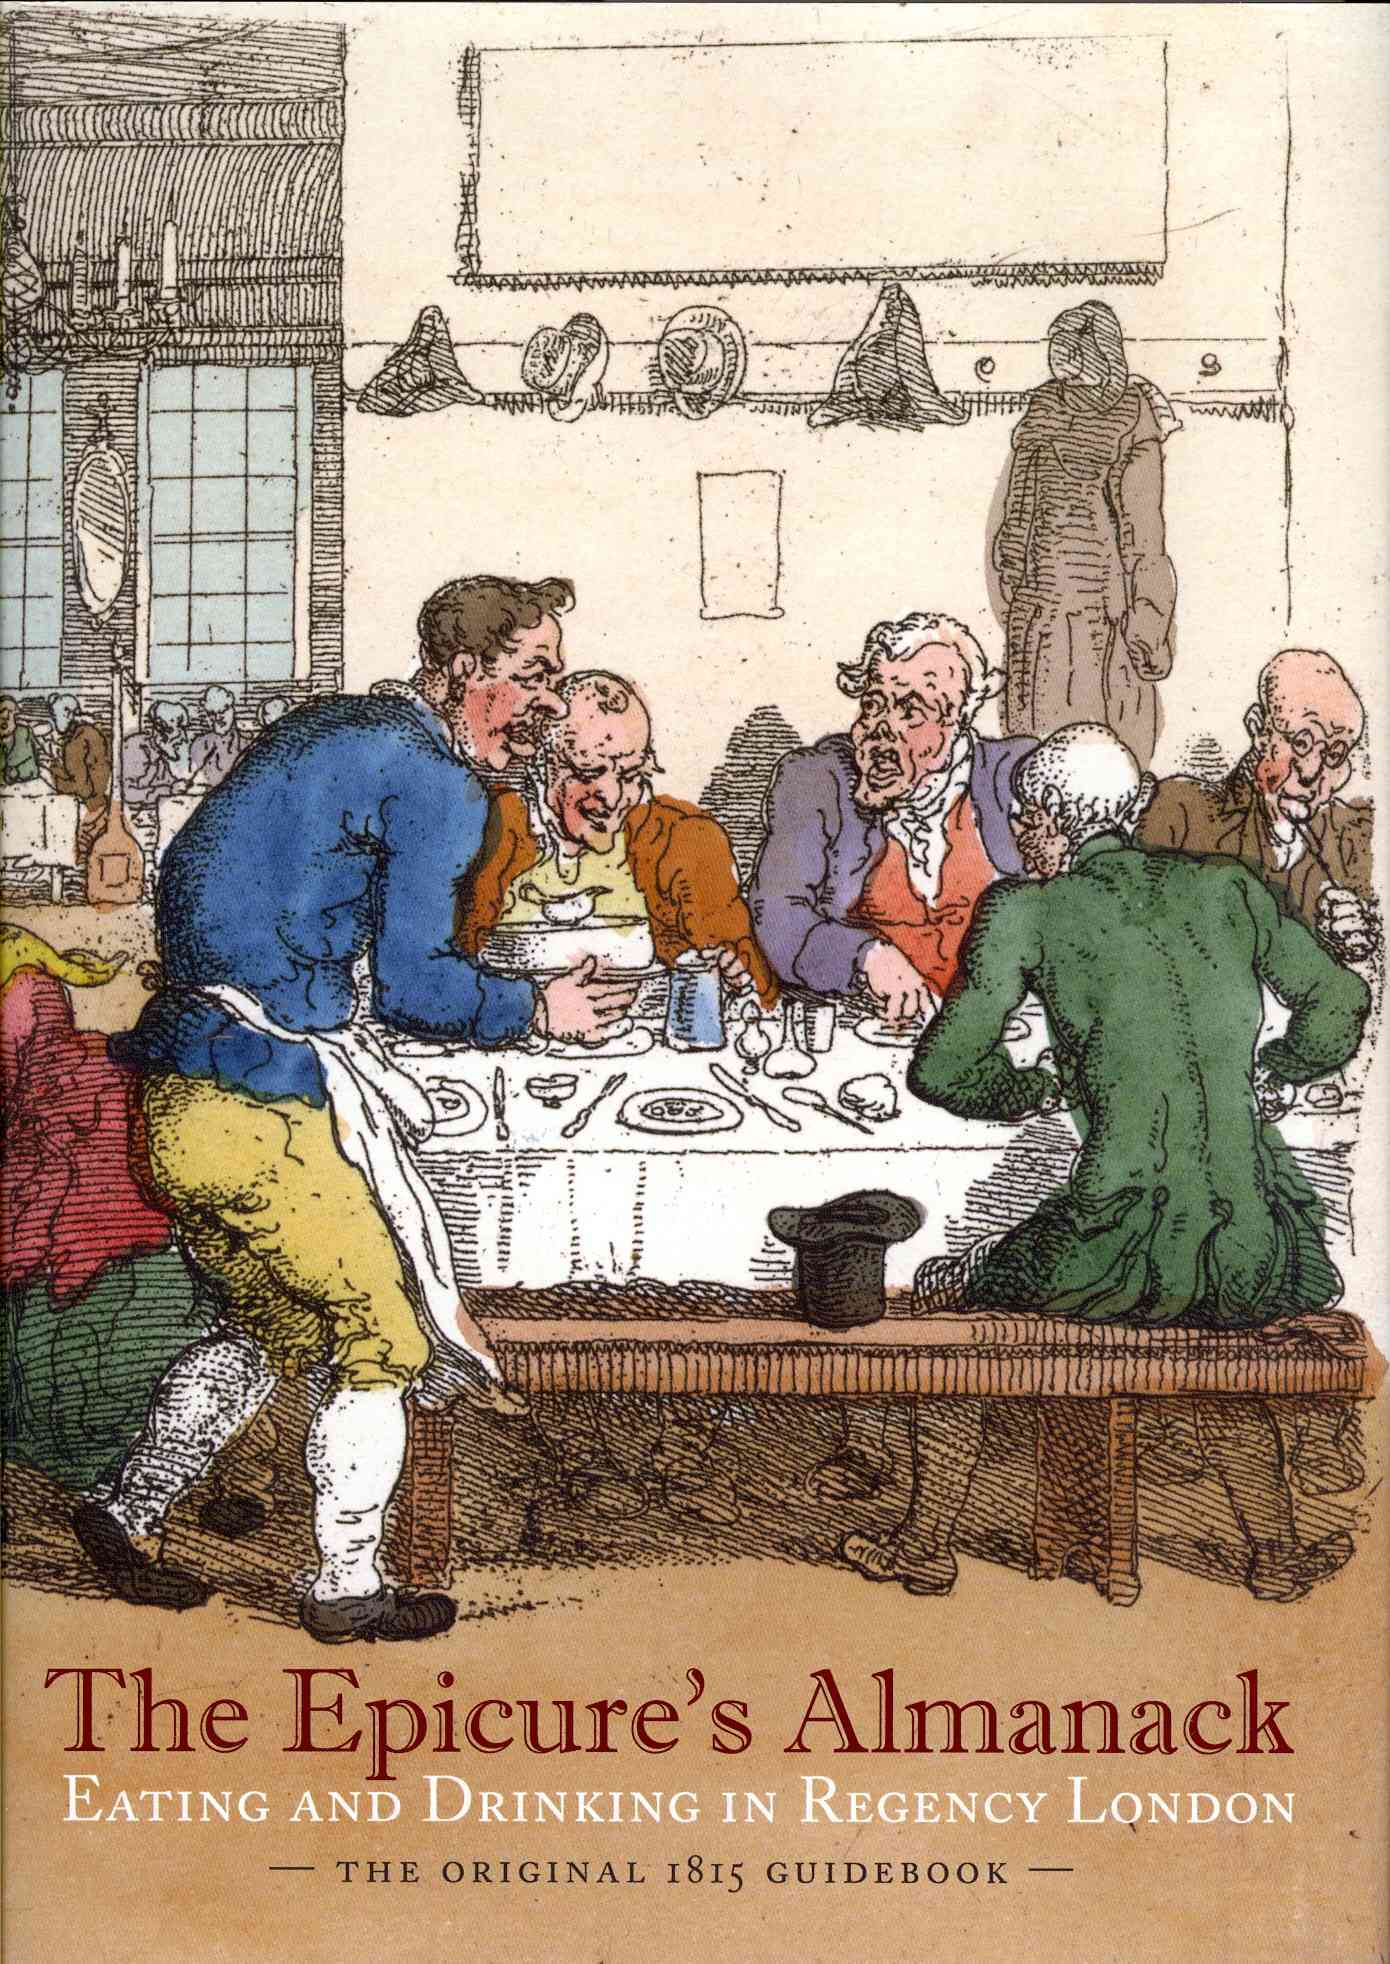 The Epicure's Almanack: Eating and Drinking in Regency London: The Original 1815 Guidebook (Hardcover)